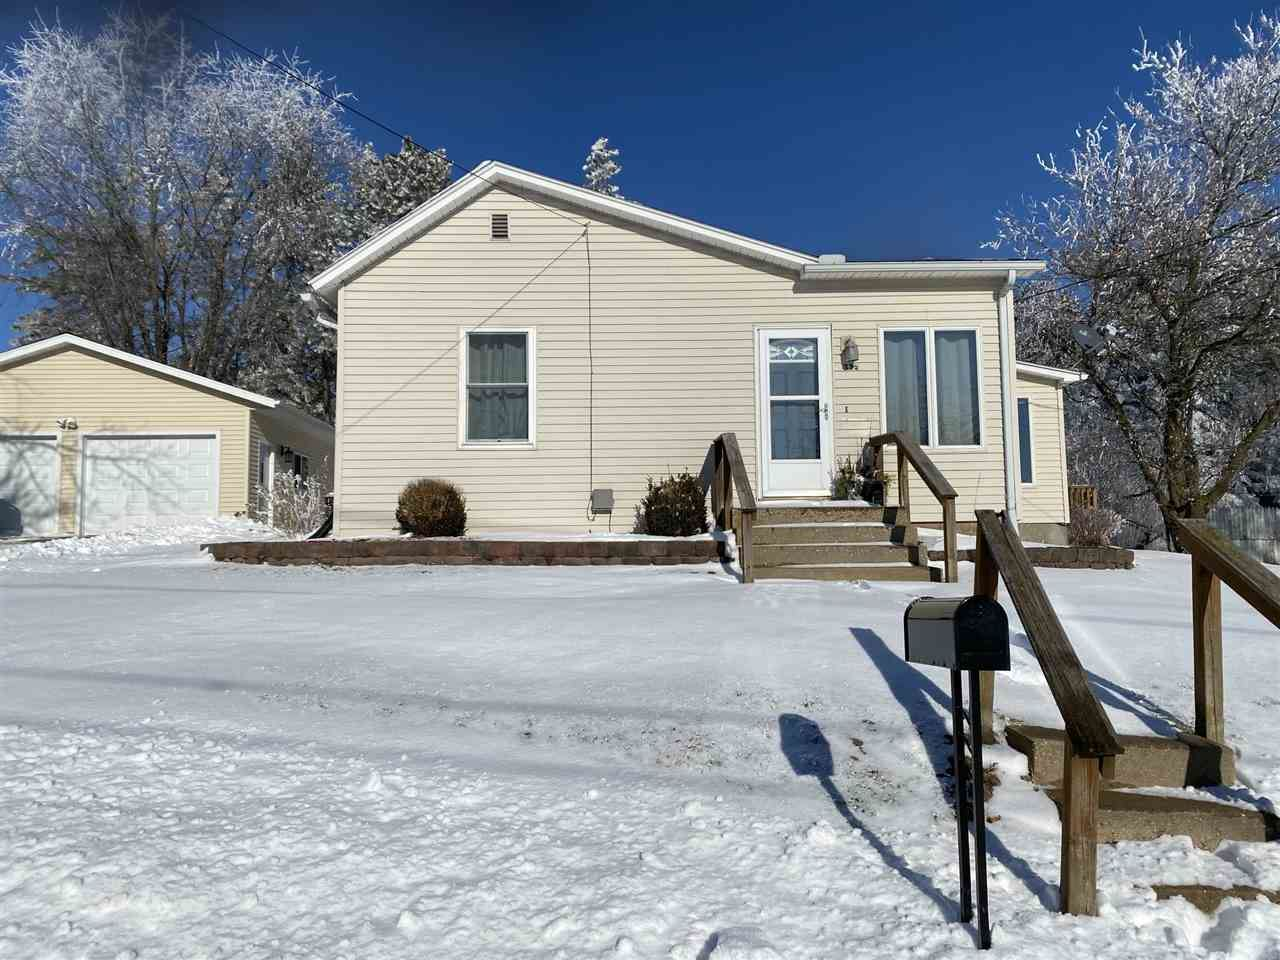 335 7th St, Mineral Point, WI 53565 - #: 1900265